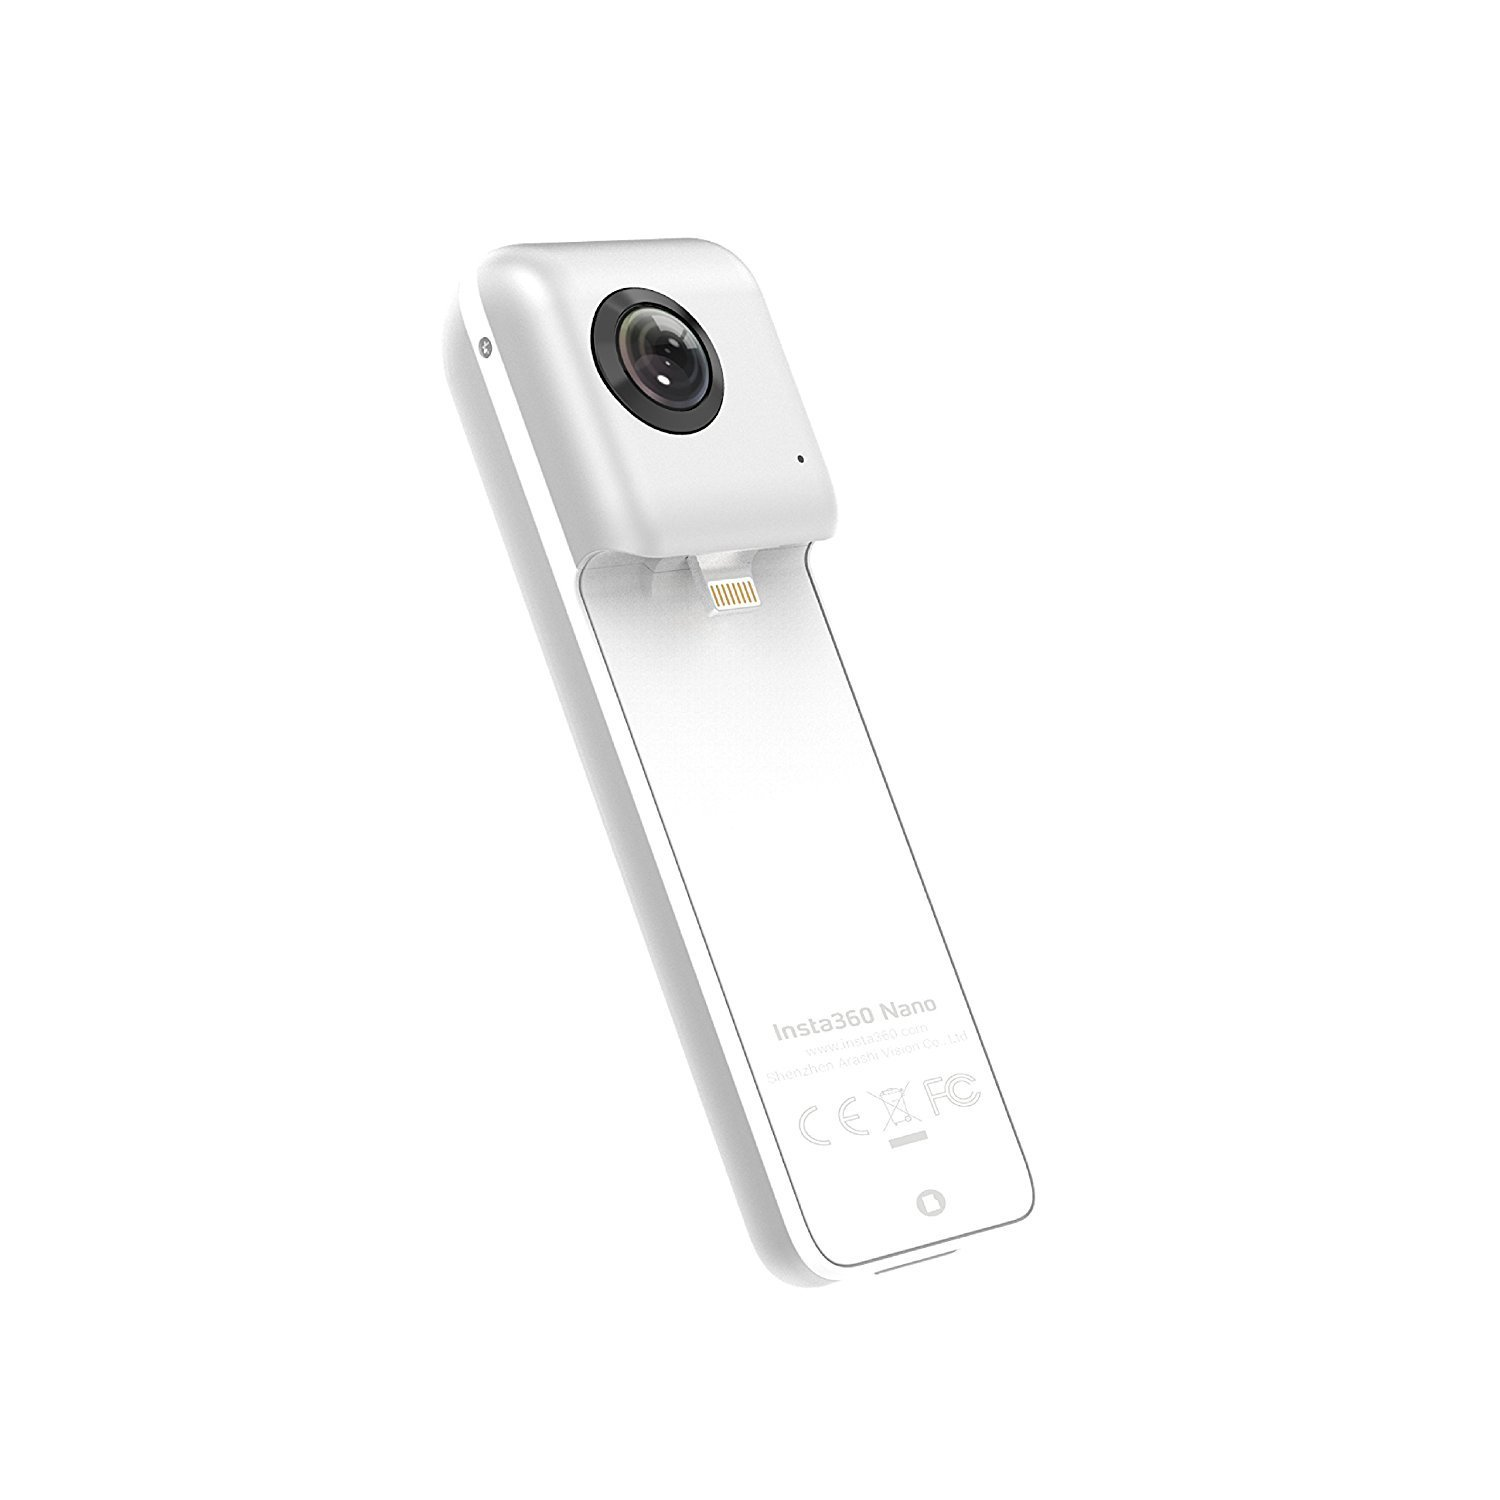 Insta360 Nano 360 Degree Camera VR 3D Panoramic Point and Shoot Digital Video Cameras 3K HD Dual Wide Angle Fisheye Lens for iPhone 7, 7 Plus and all iPhone 6 series, 360 Live on Facebook- Pearl White by insta360 (Image #1)